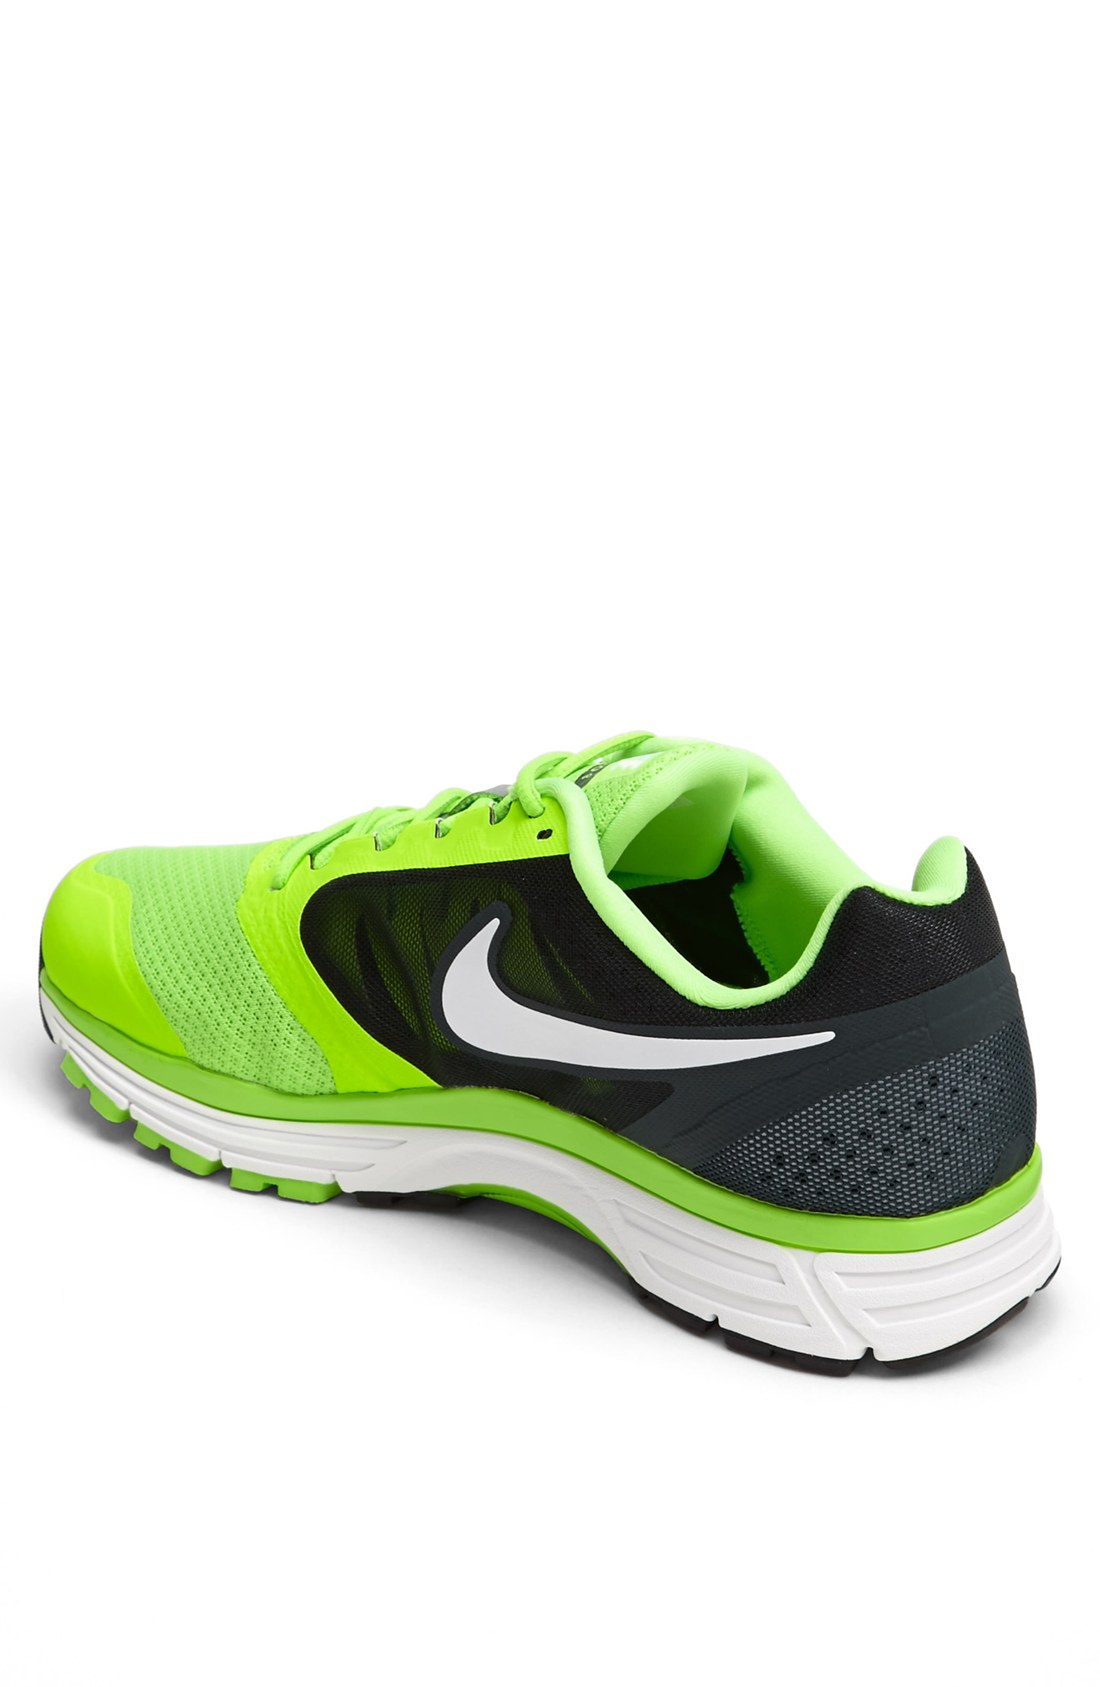 c4a4dcf51b3d0 ... reduced nike zoom vomero 8 for venta dde32 5c2aa